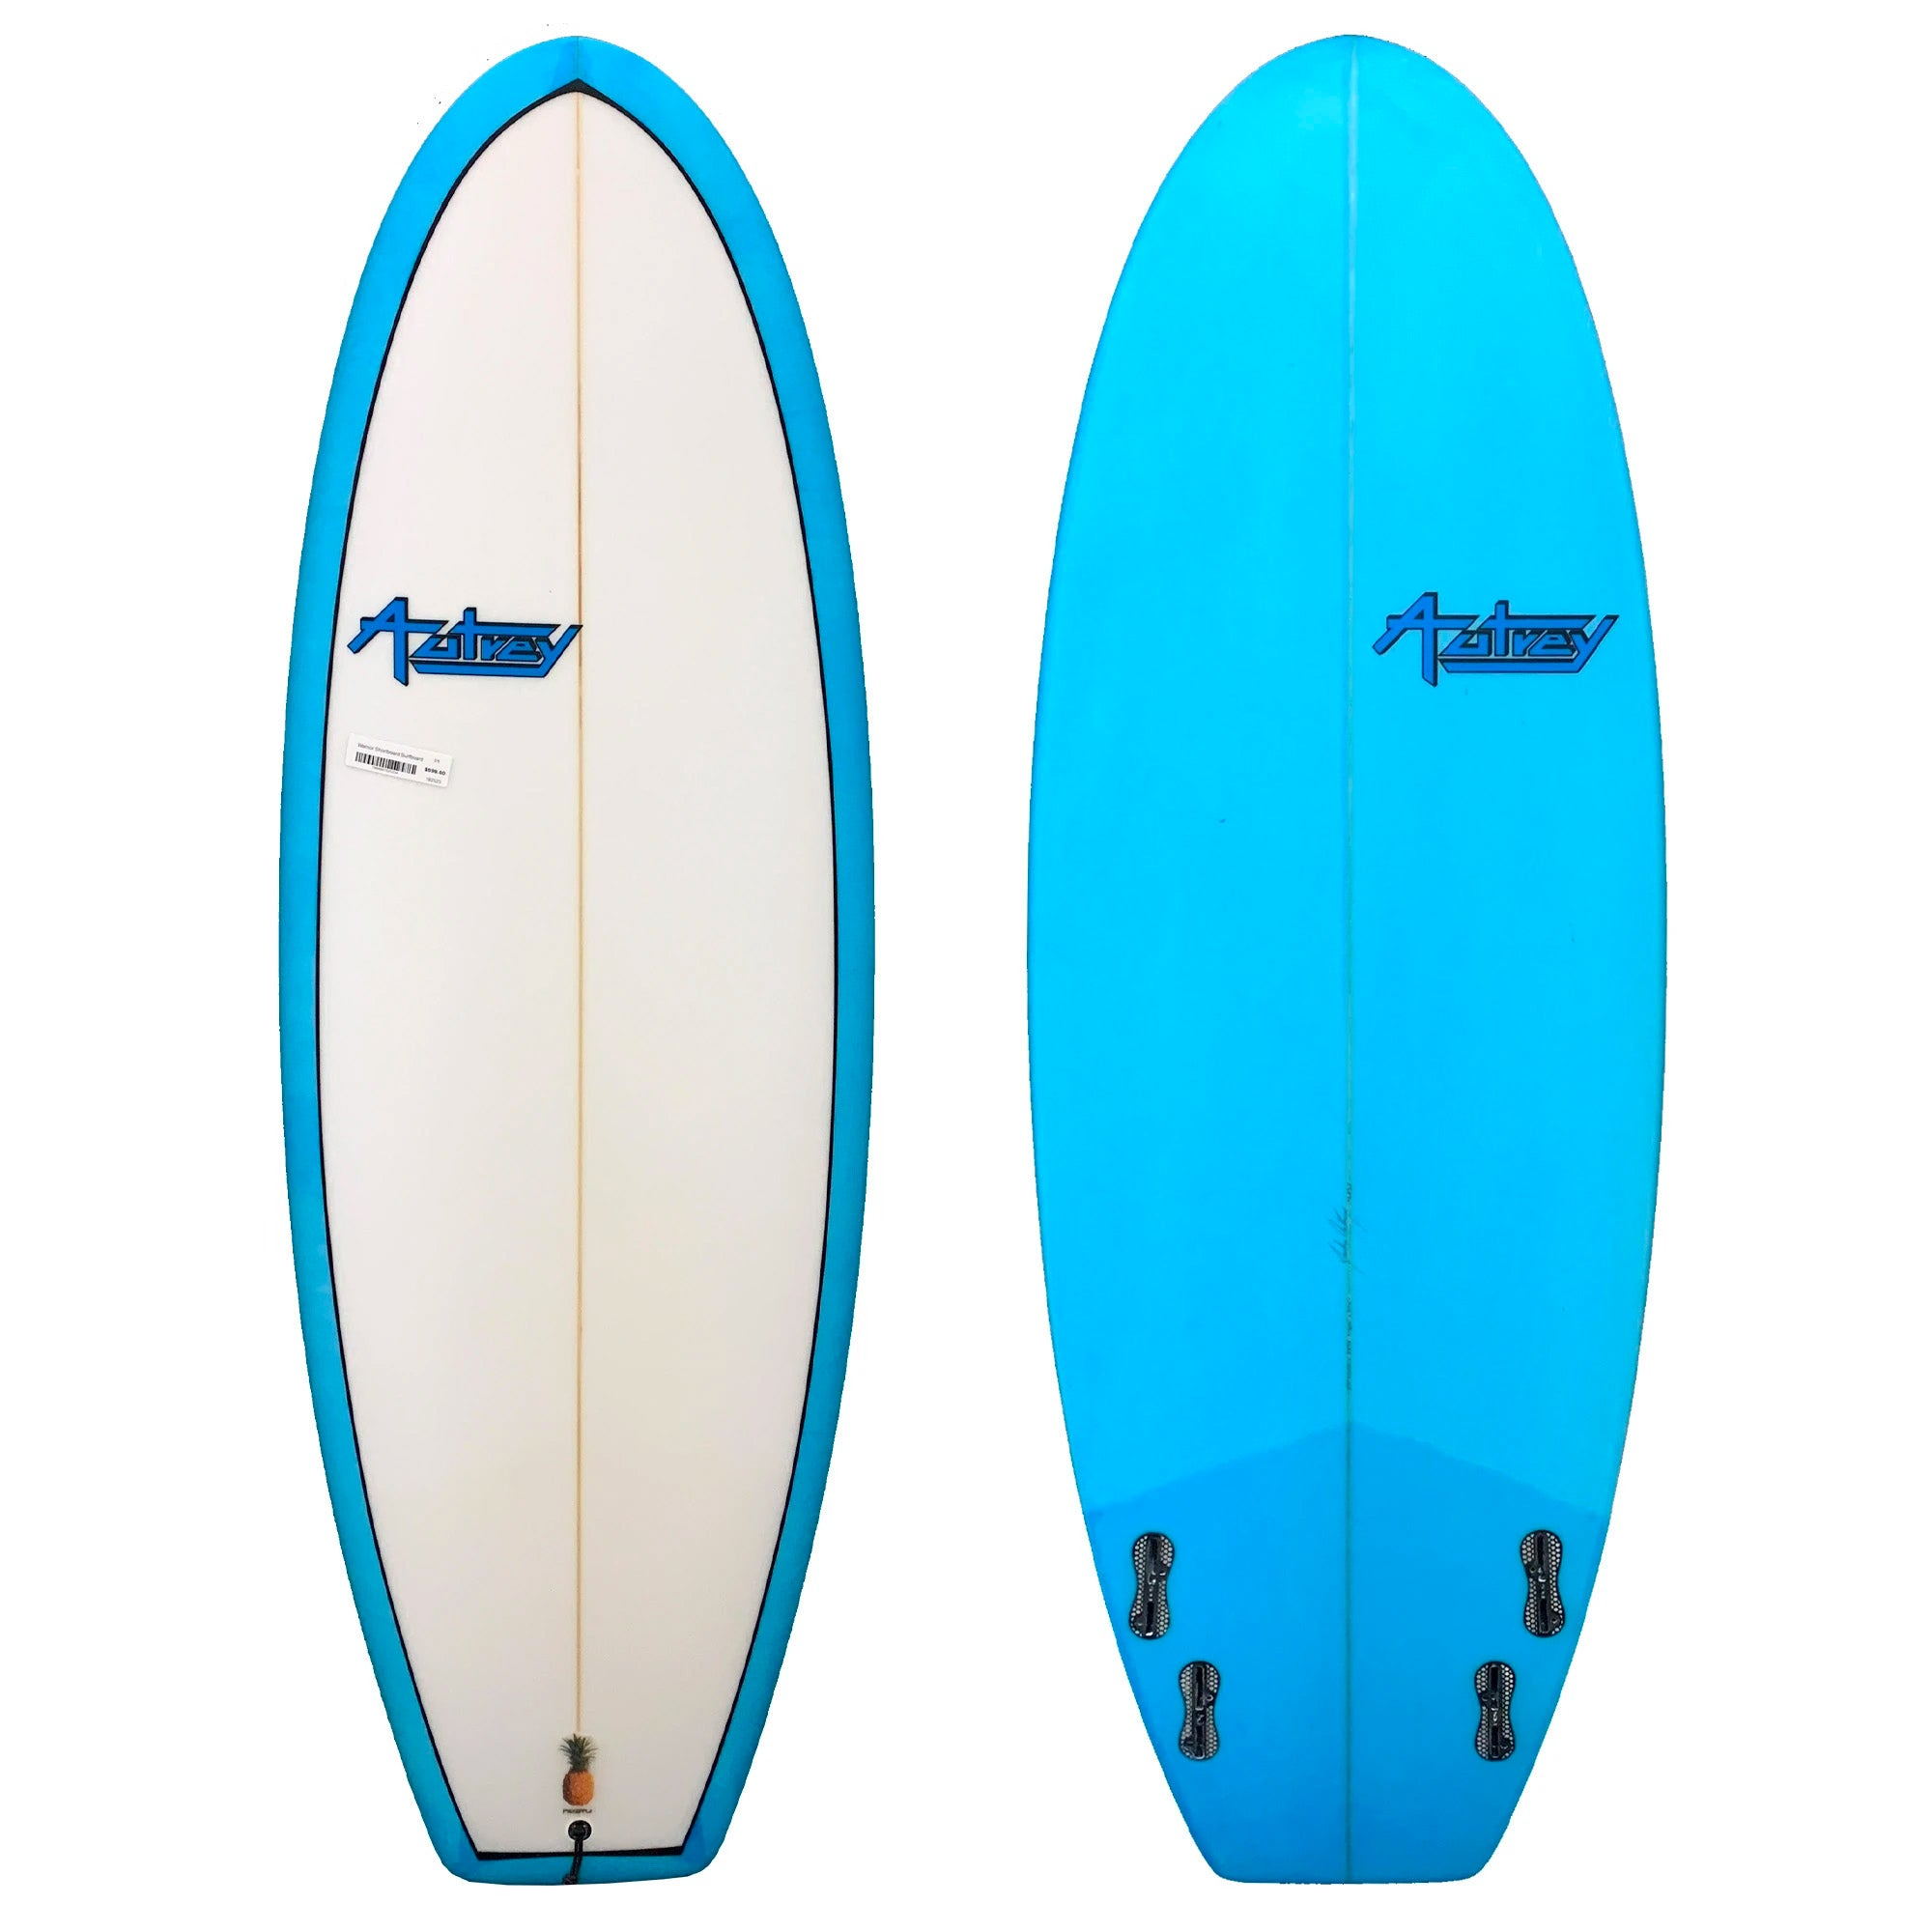 Warrior Hybrid Surfboard